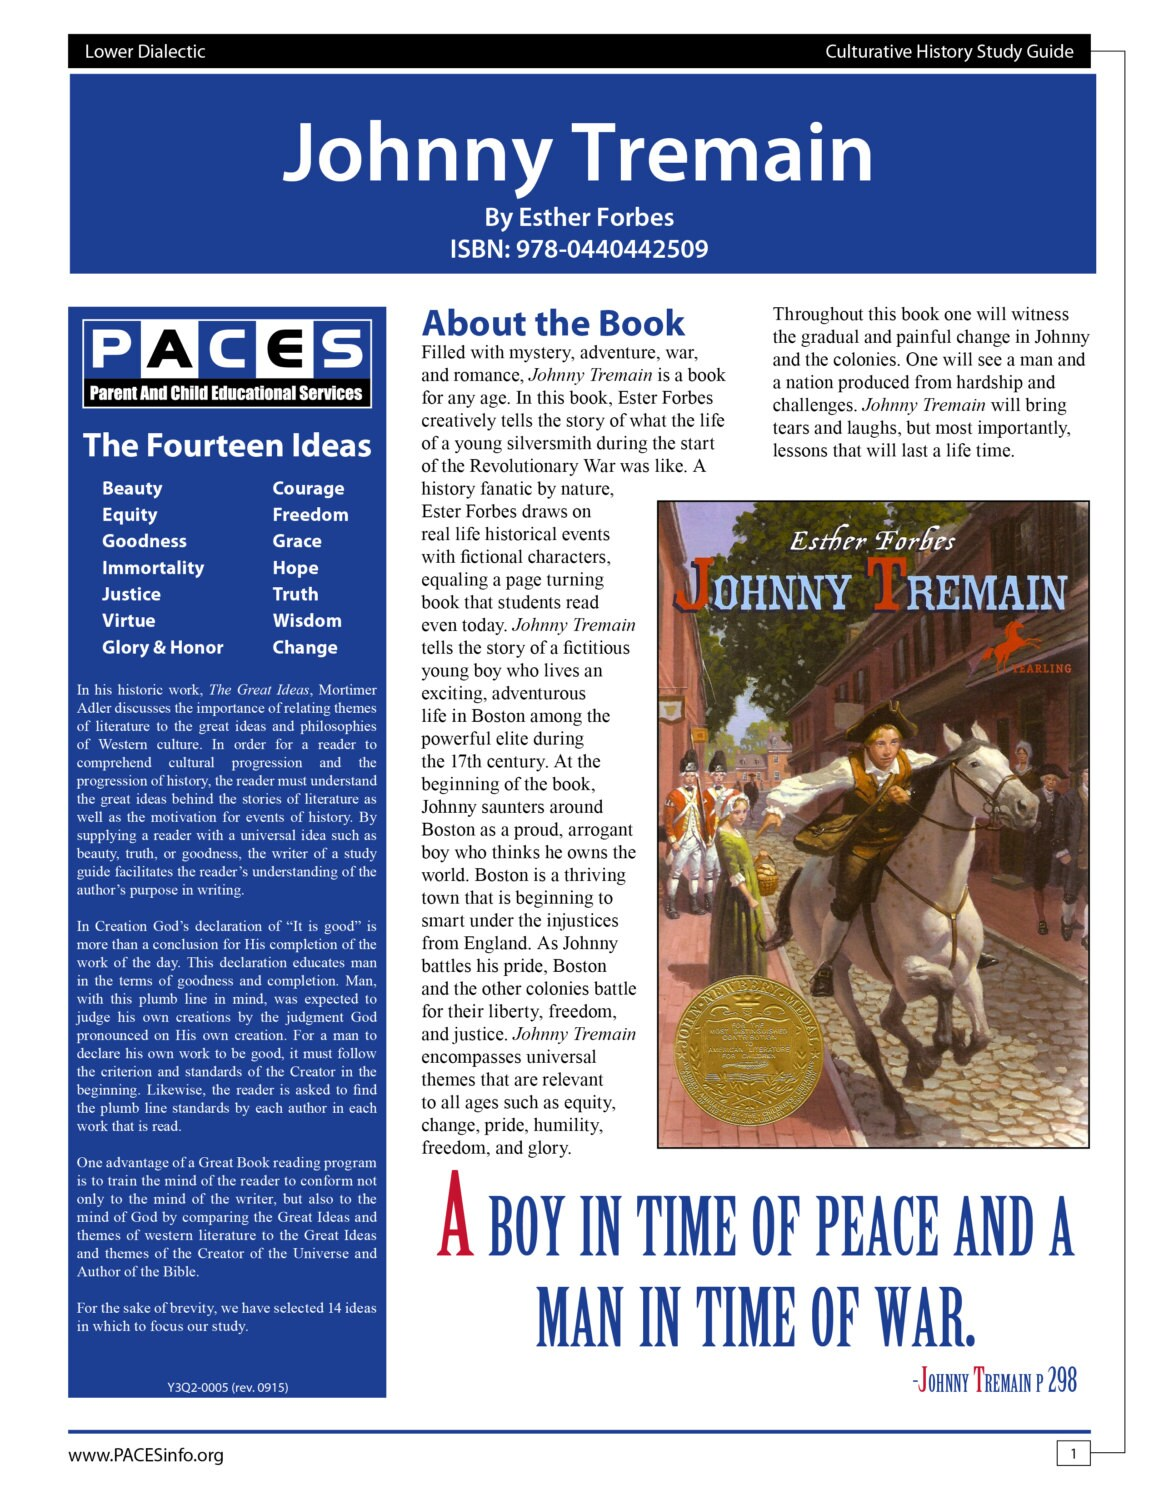 an analysis of the story of johnny tremain This one-page guide includes a plot summary and brief analysis of johnny tremain by esther forbes johnny tremain is a 1943 historical children's novel by american author esther forbes, set during the revolutionary war.